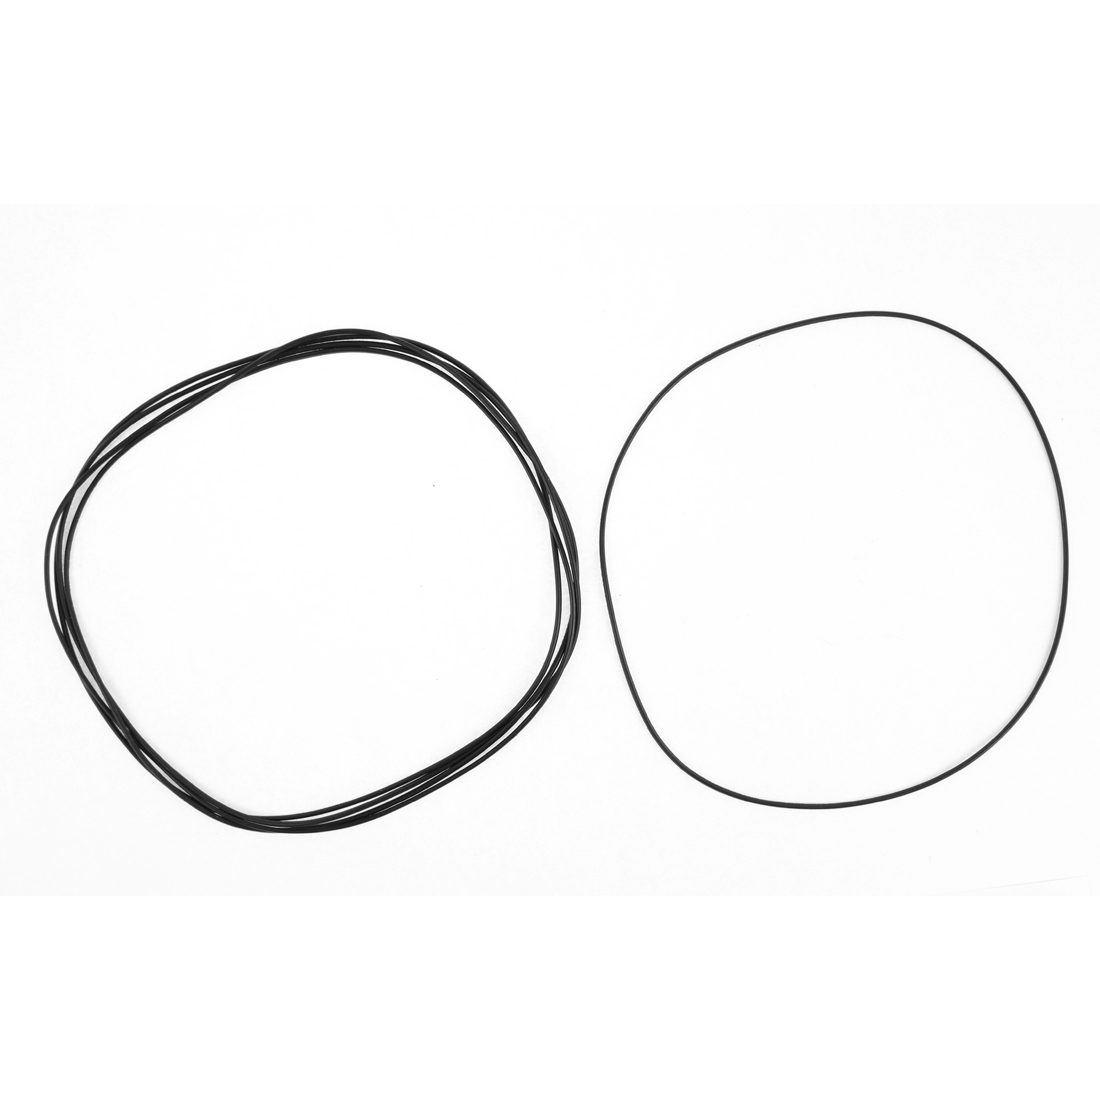 170mm External Diameter Rubber Oil Seal O Ring Gasket Black 5 Pcs